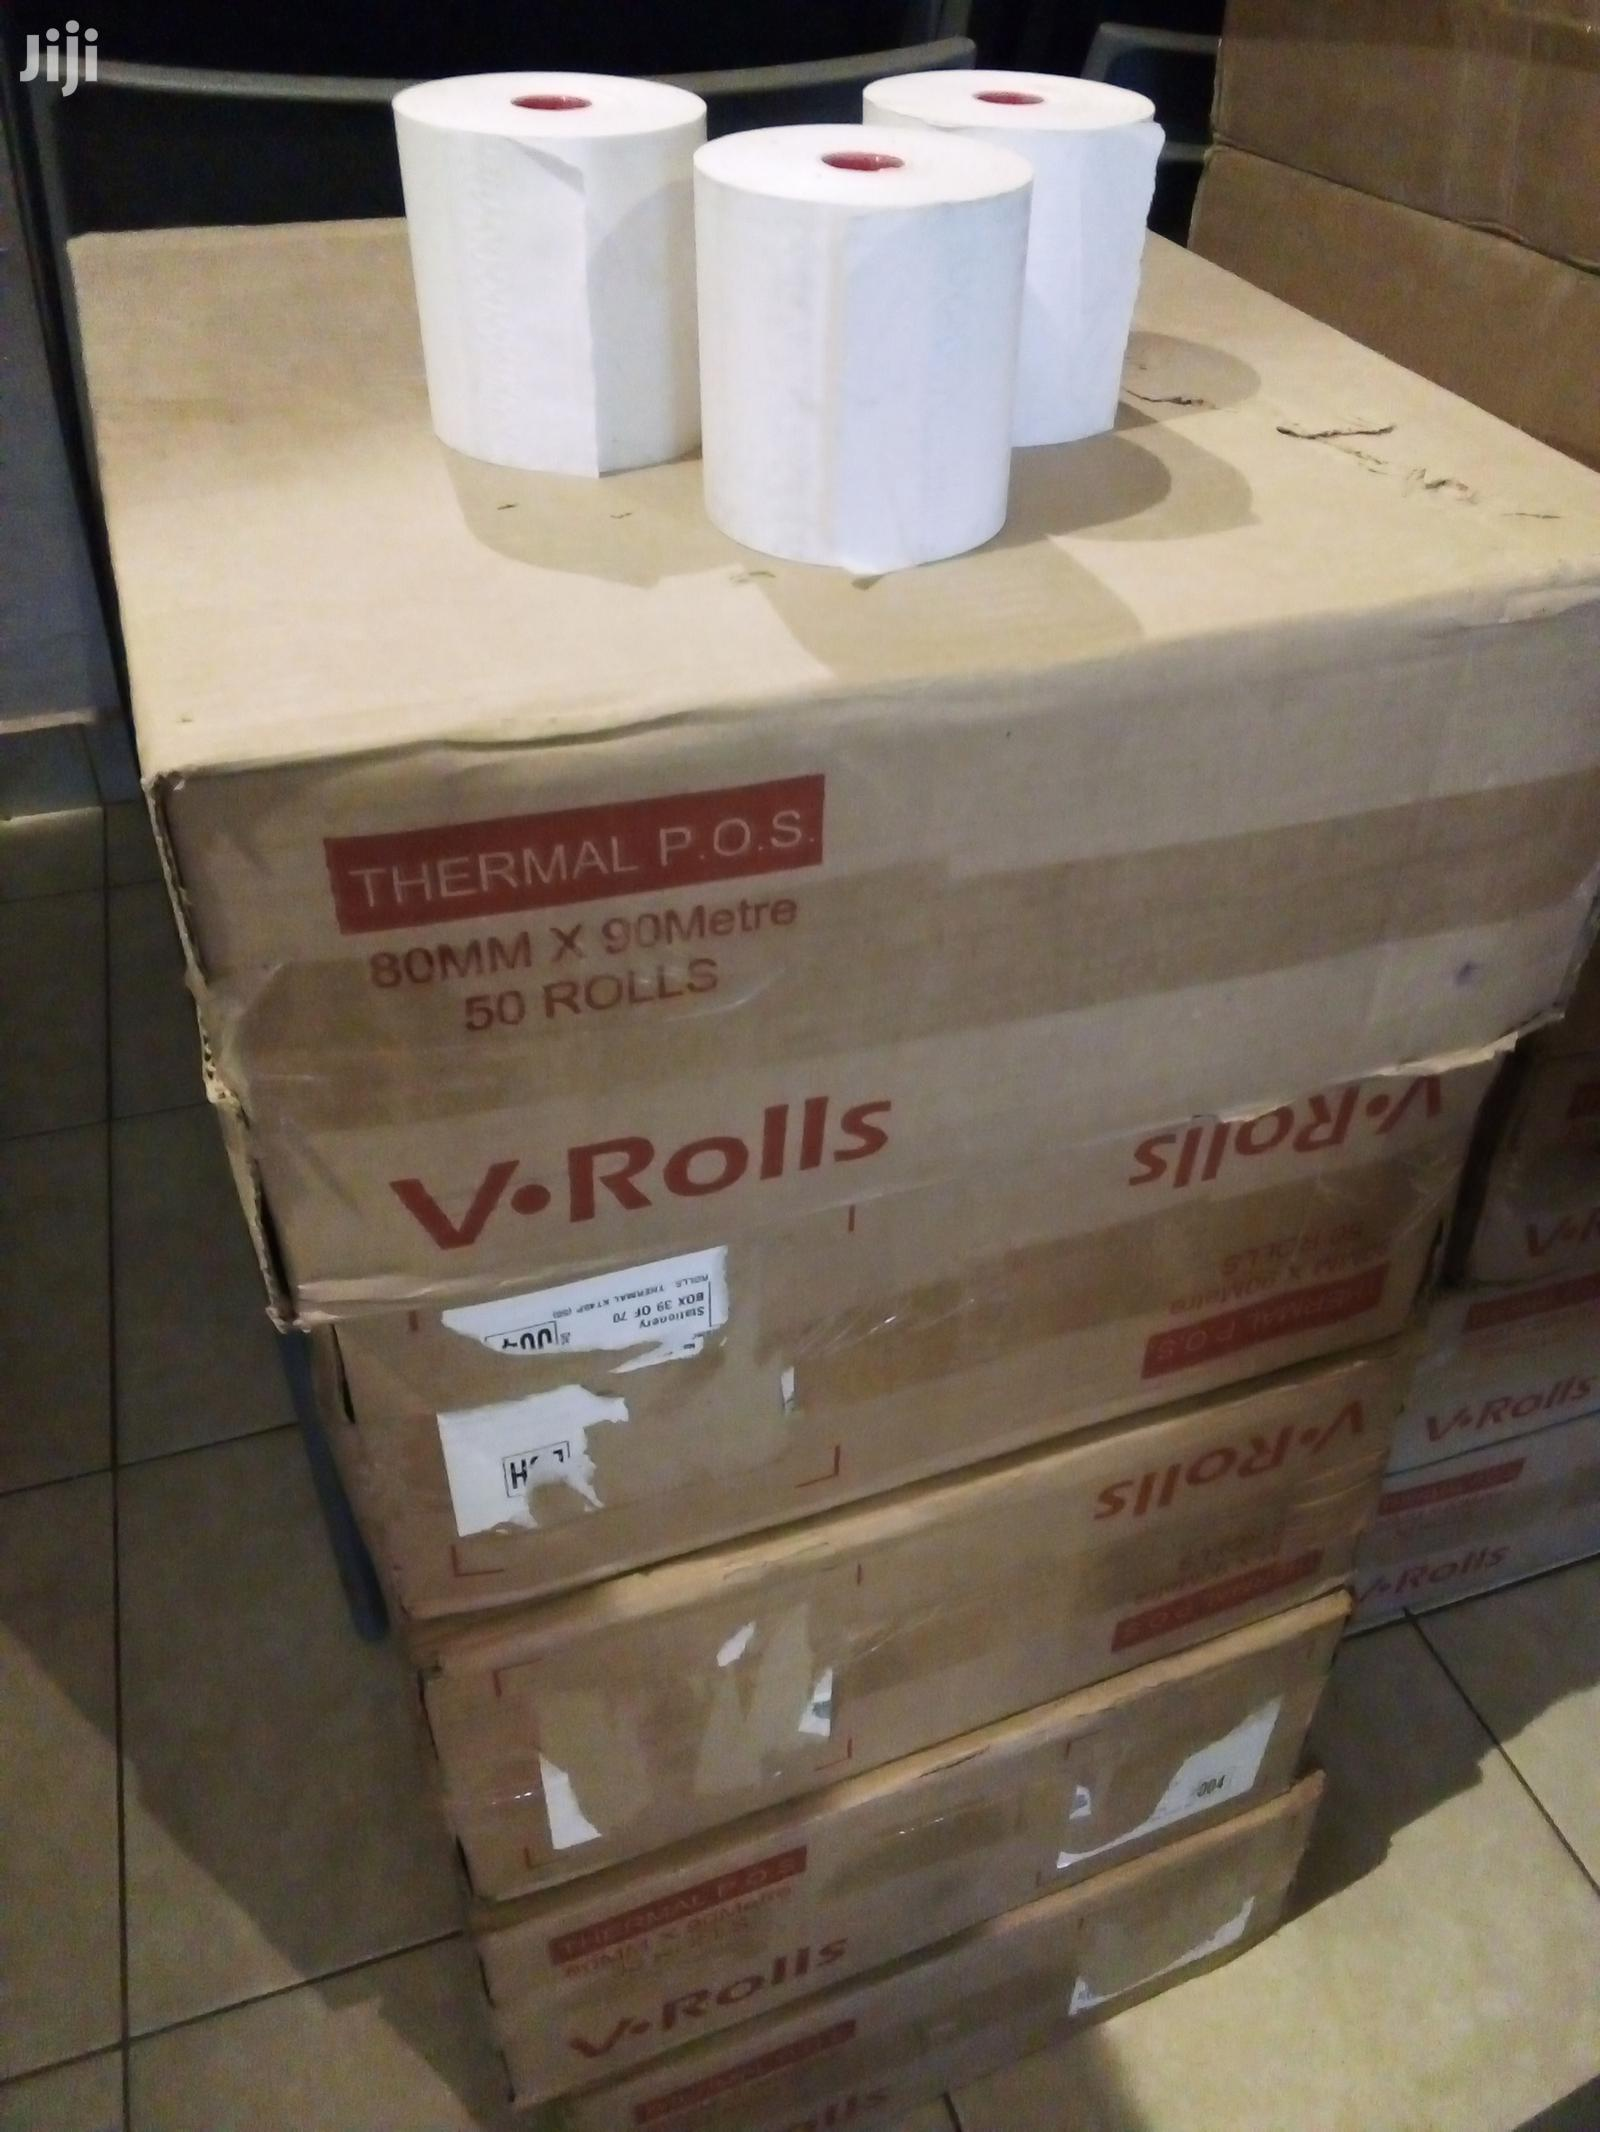 80MM×90metres Thermal Rolls (50 Rolls/Pcs)